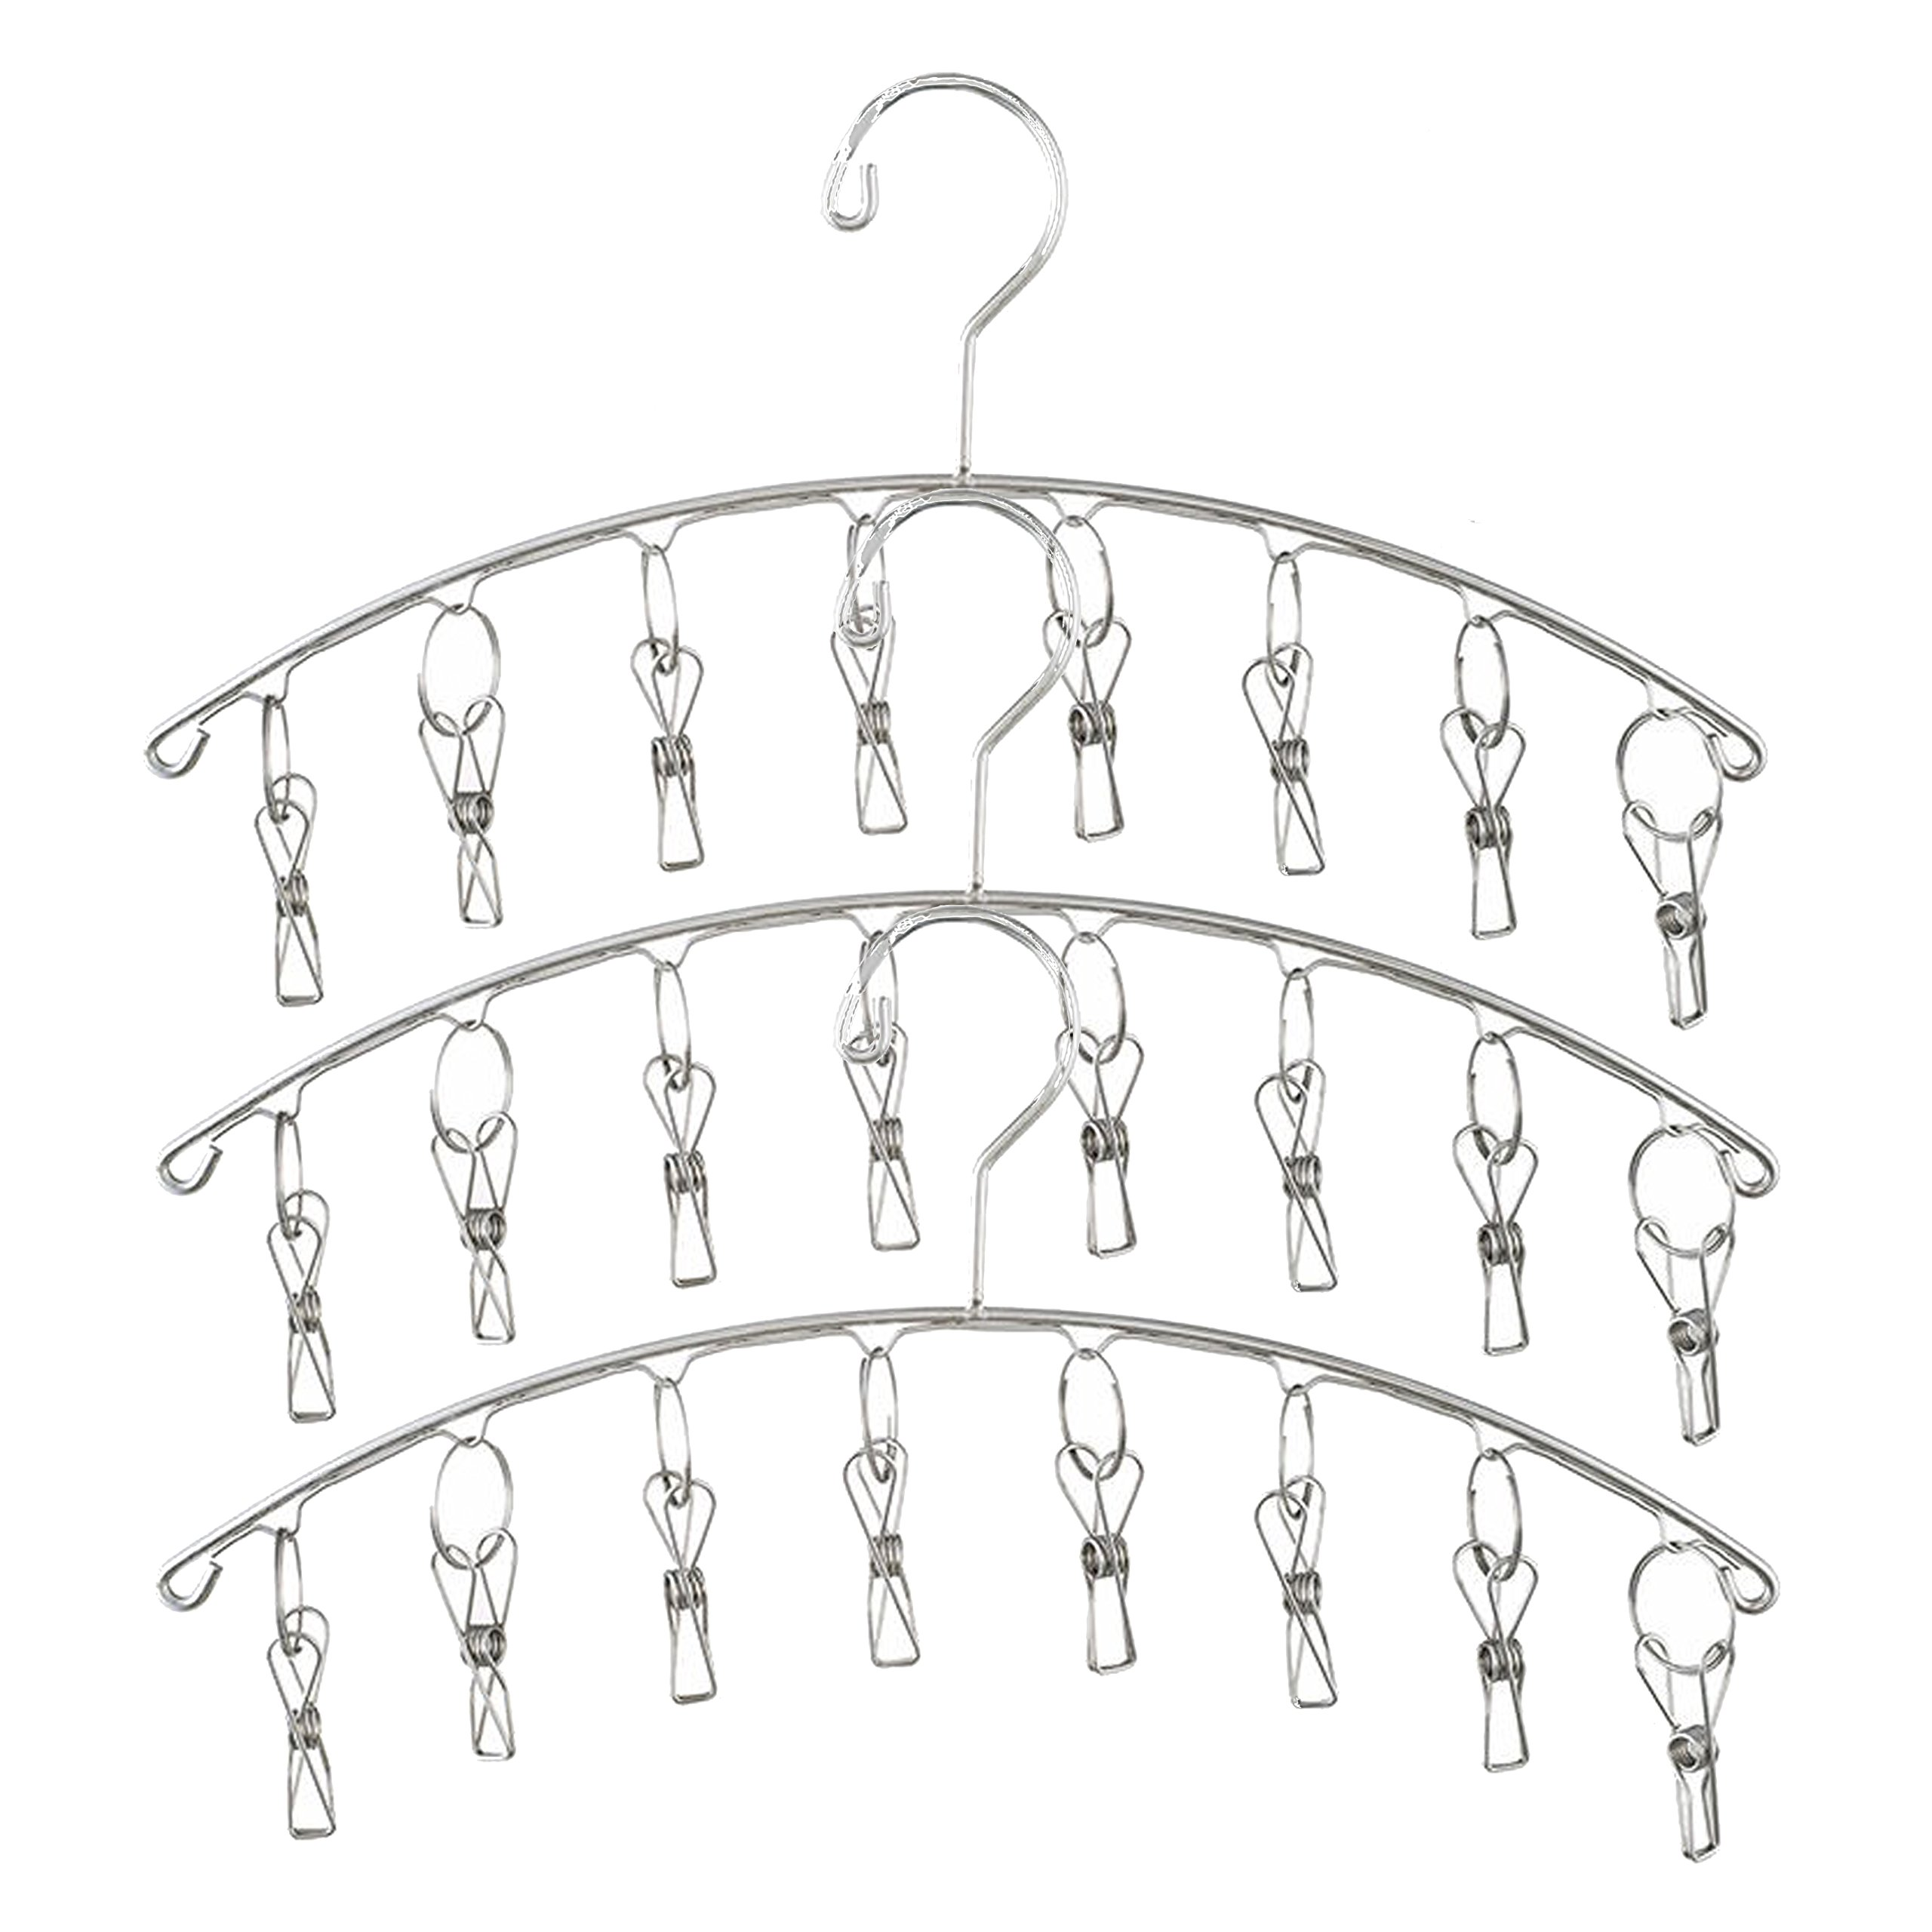 Yunmeng Stainless Steel Laundry Drying Rack Clothes Hanger with Windproof Hook & 8 Clips For Drying Socks, Baby Clothes, Cloth Diapers,Bras,Towel,Underwear,Hat,Scarf,Pants,Gloves (3 PCS)